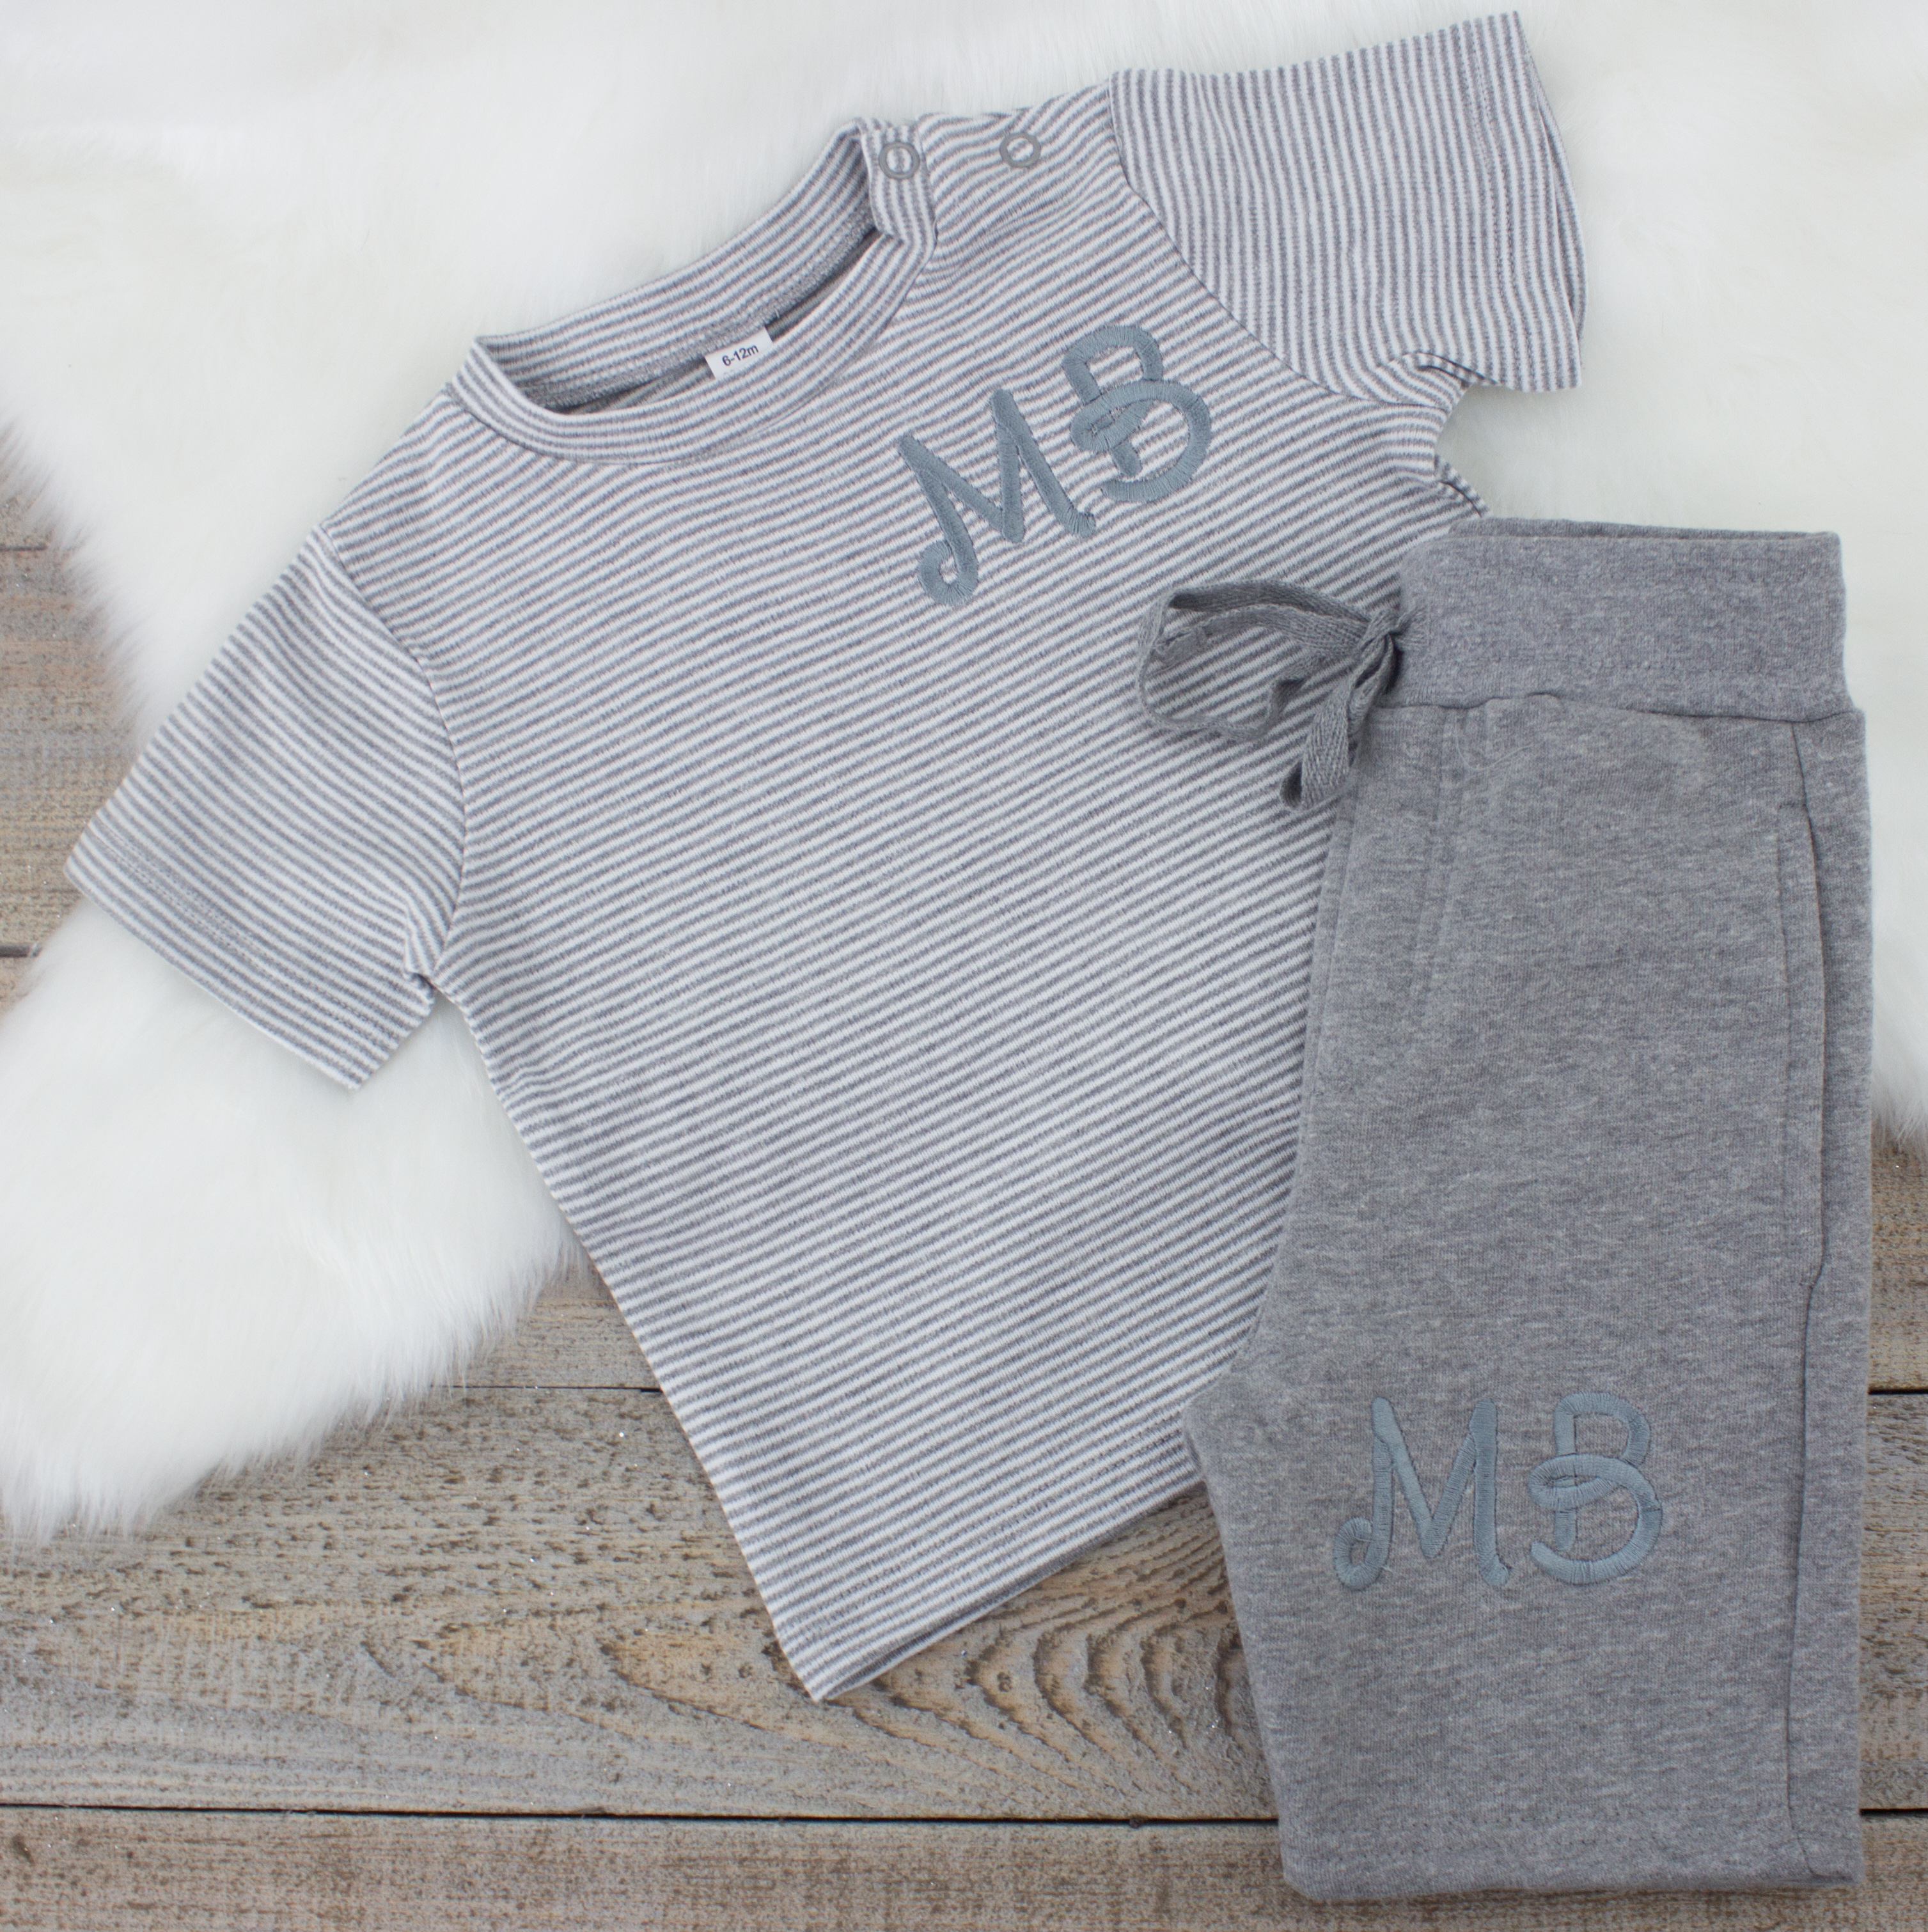 Product Description. monogrammed baby loungewear. ""